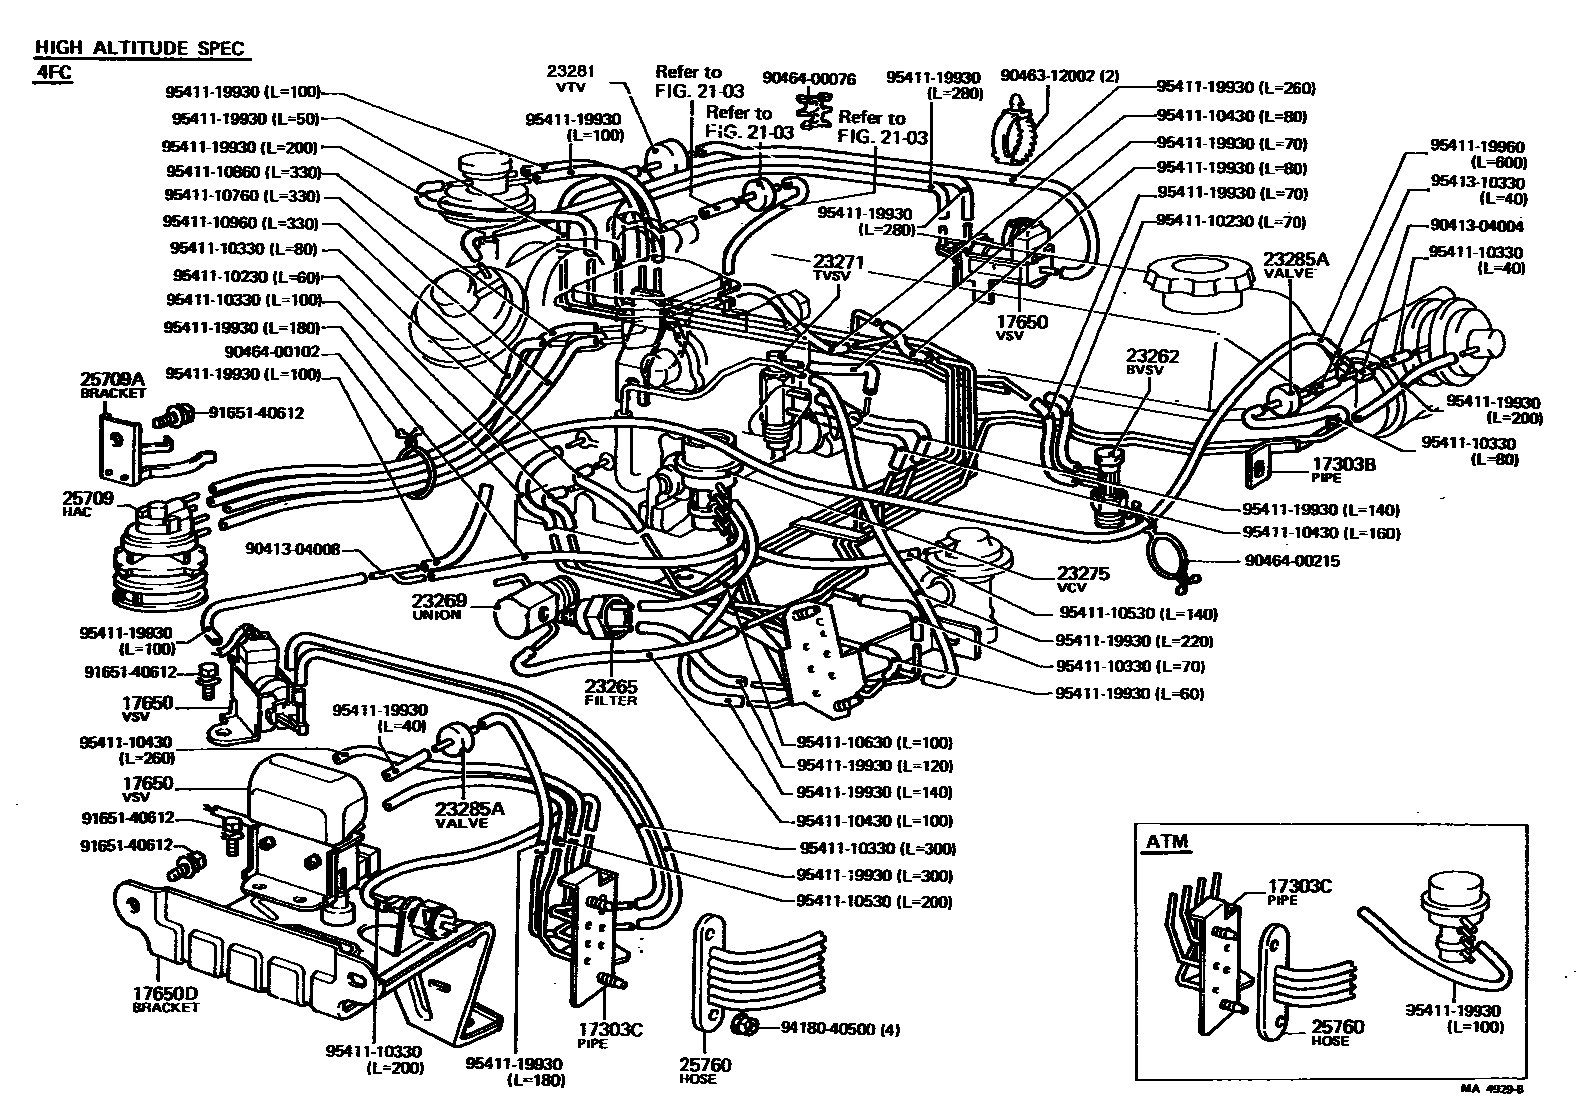 Serpentine Belt Diagram Camry 4 Cyl